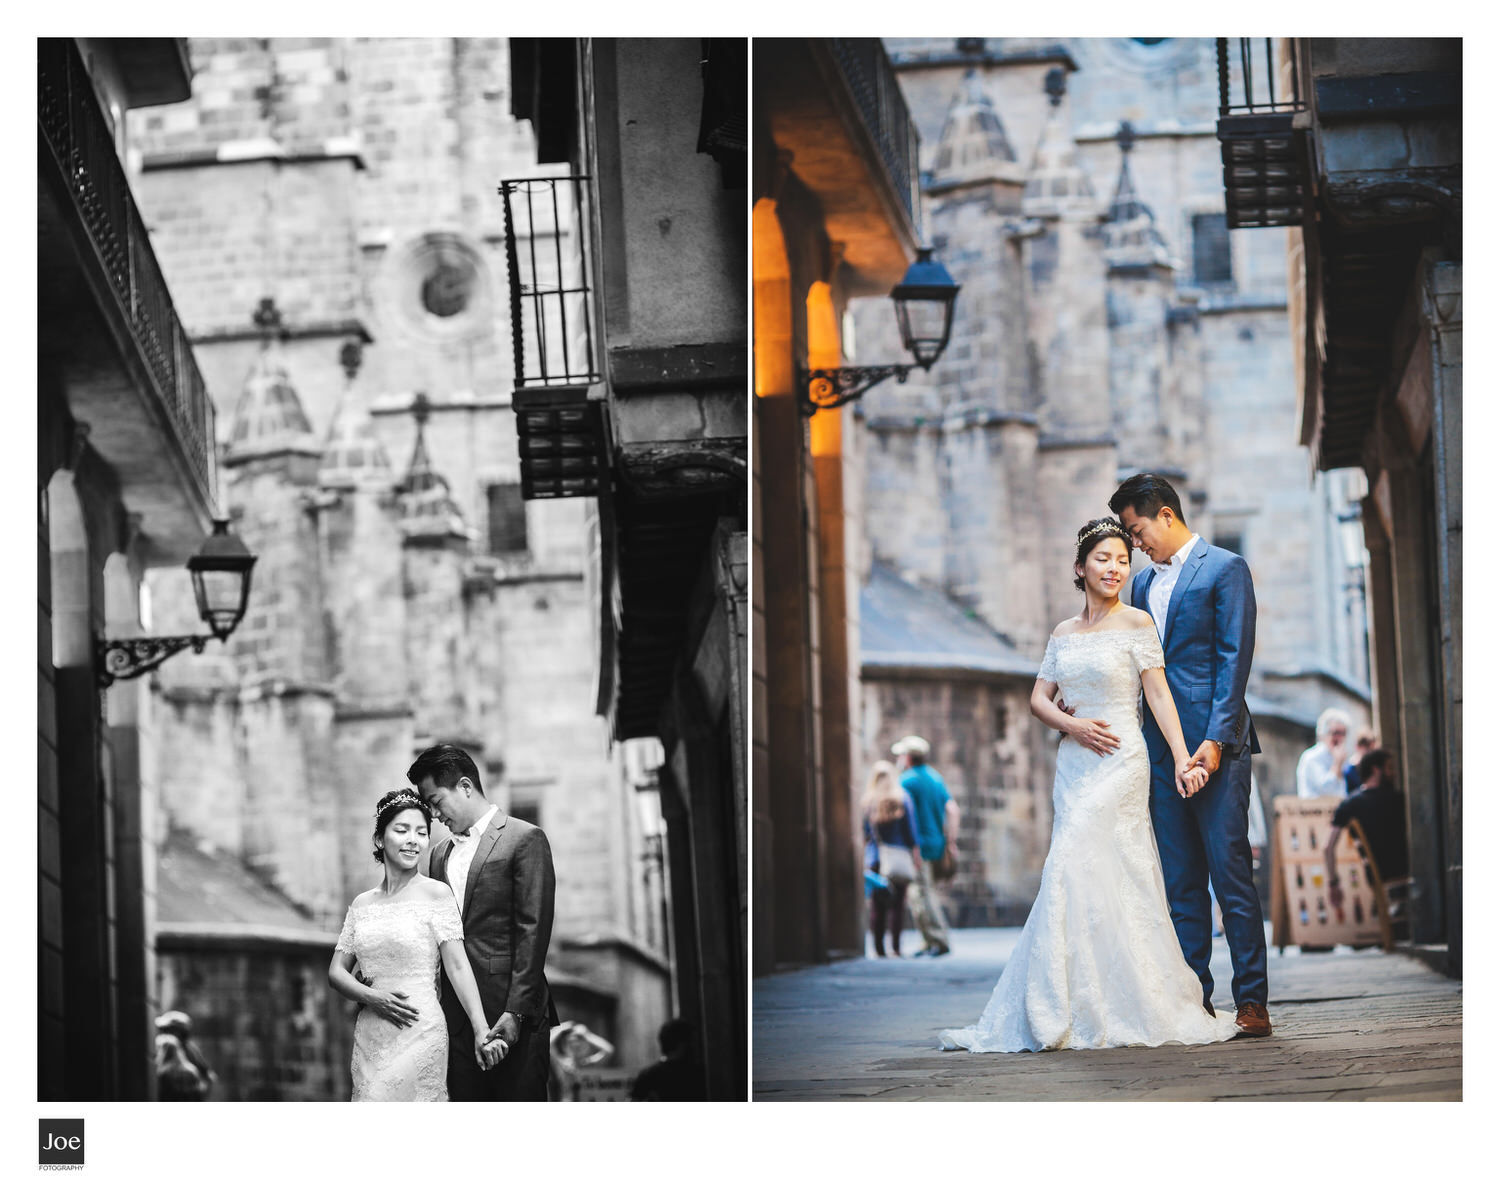 joe-fotography-39-barcelona-pre-wedding-linda-colin.jpg